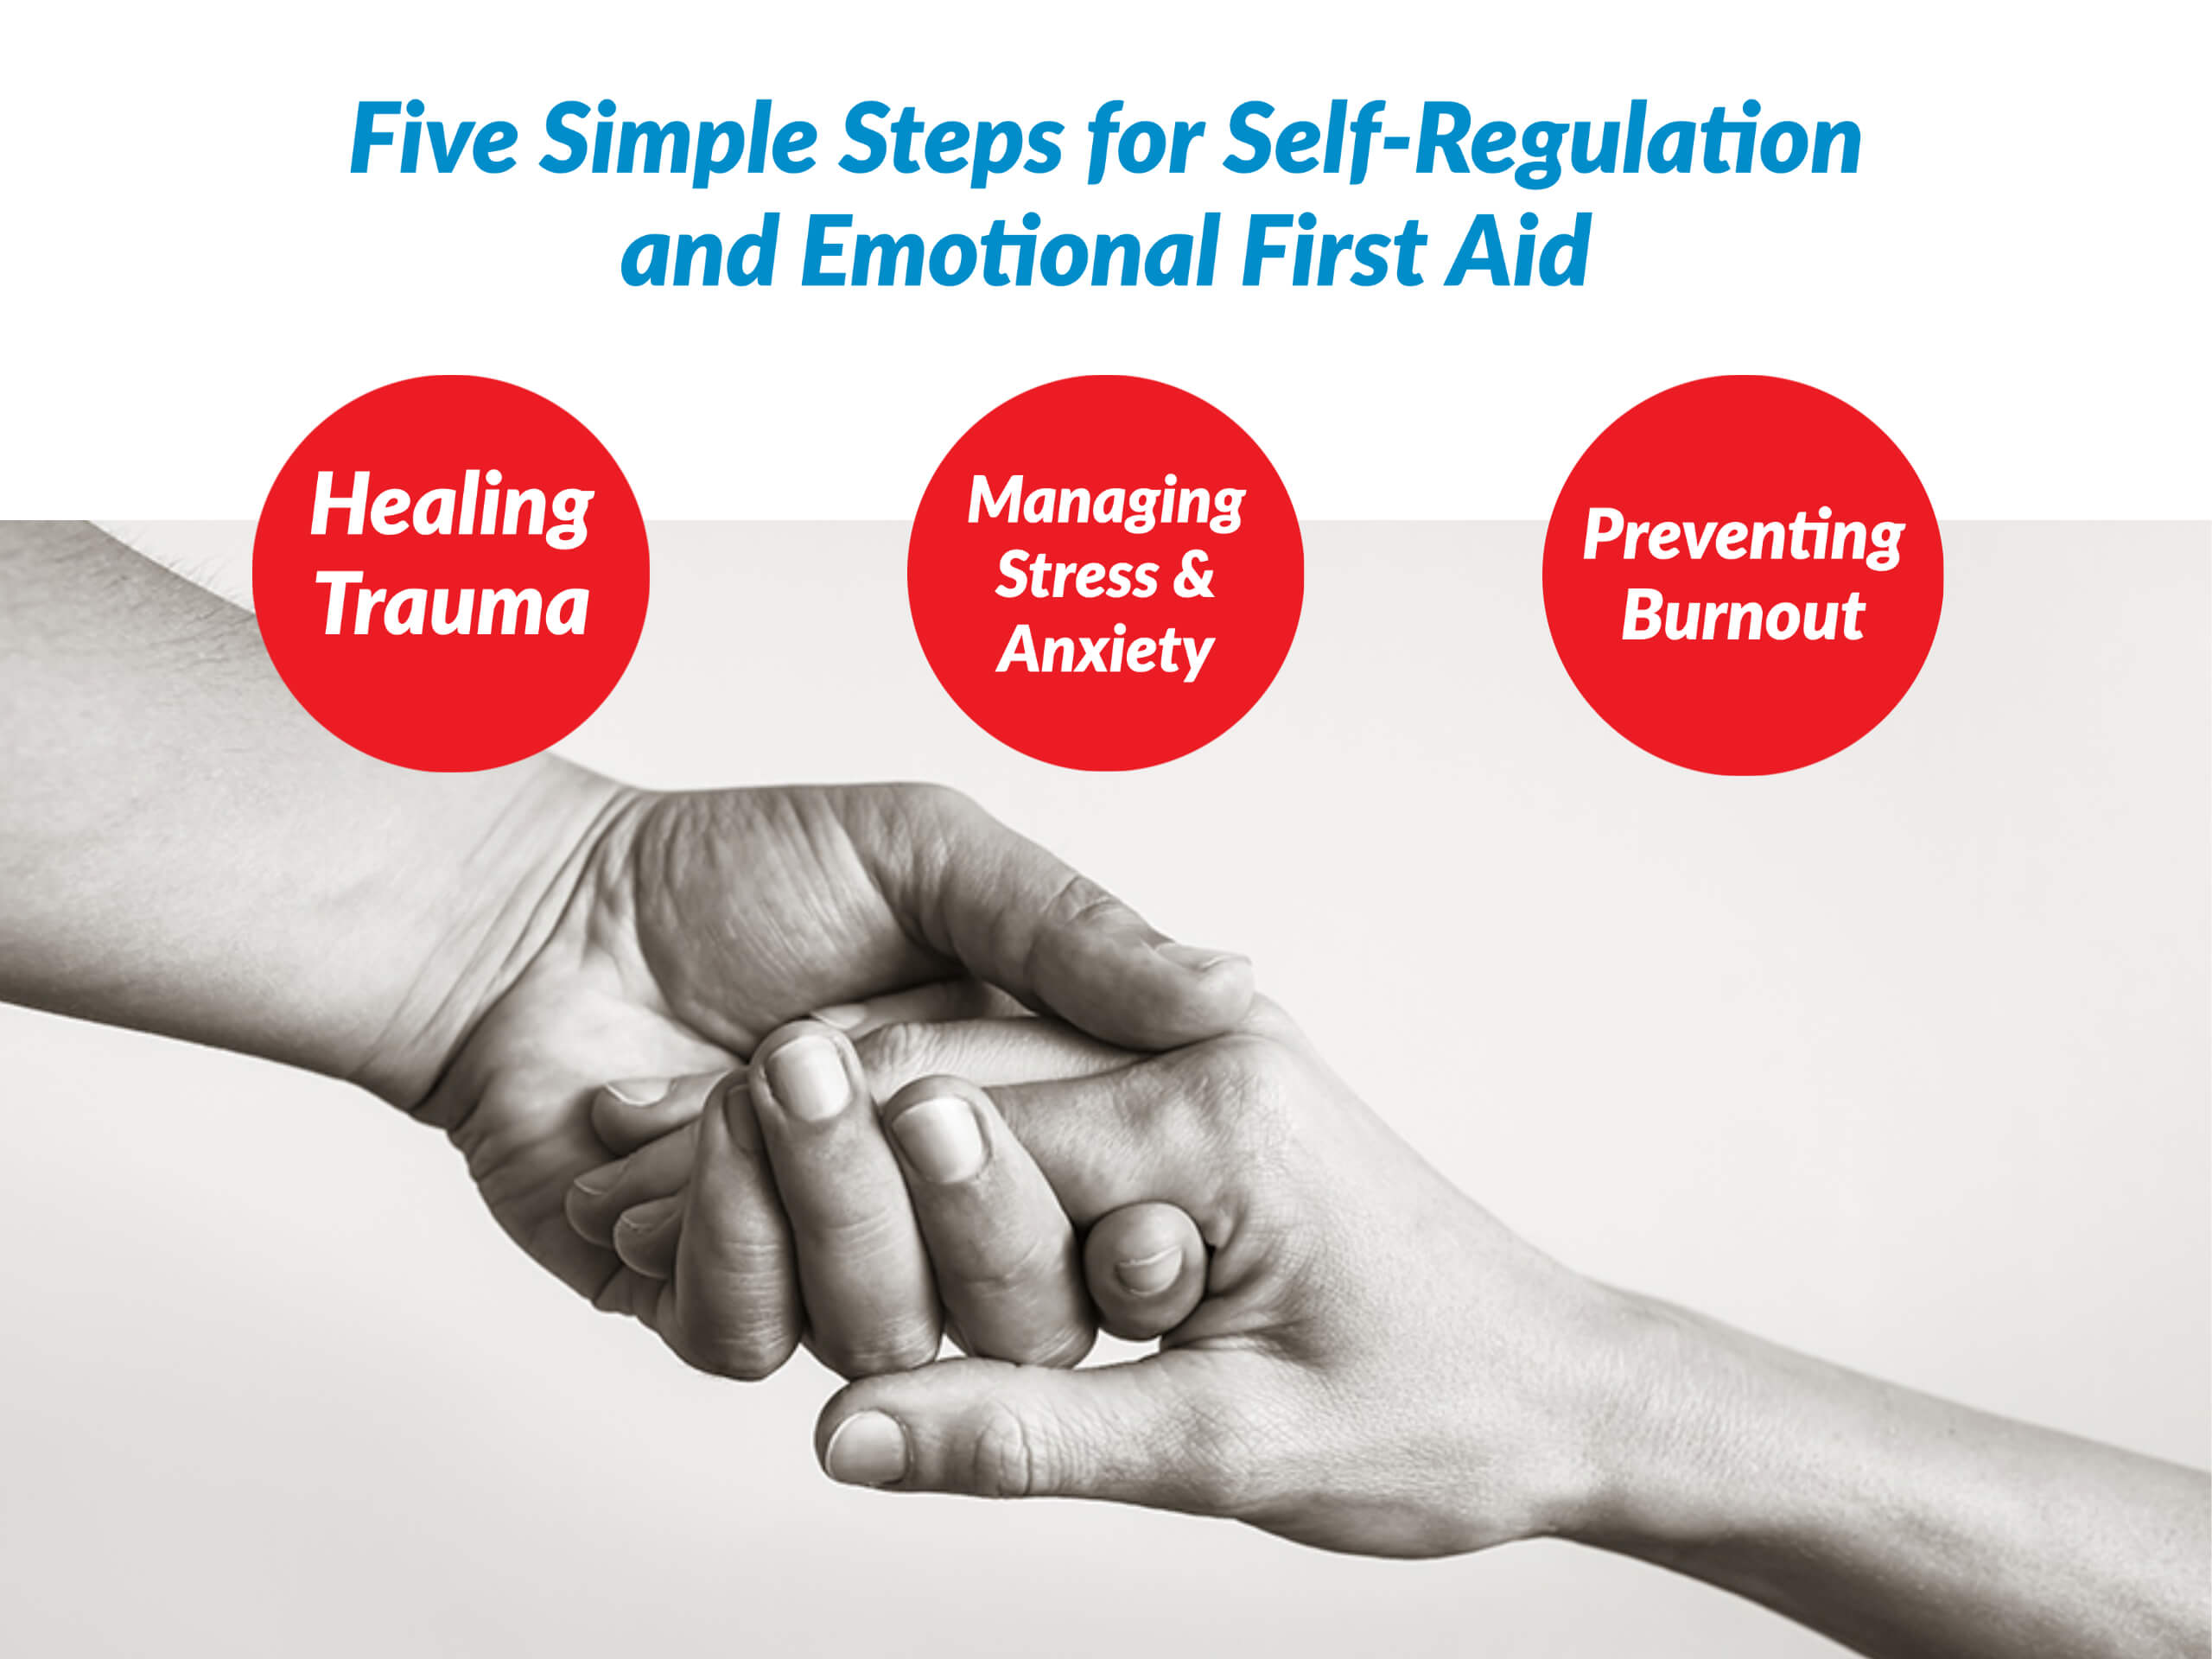 Five Simple Steps for Self-Regulation and Emotional First Aid